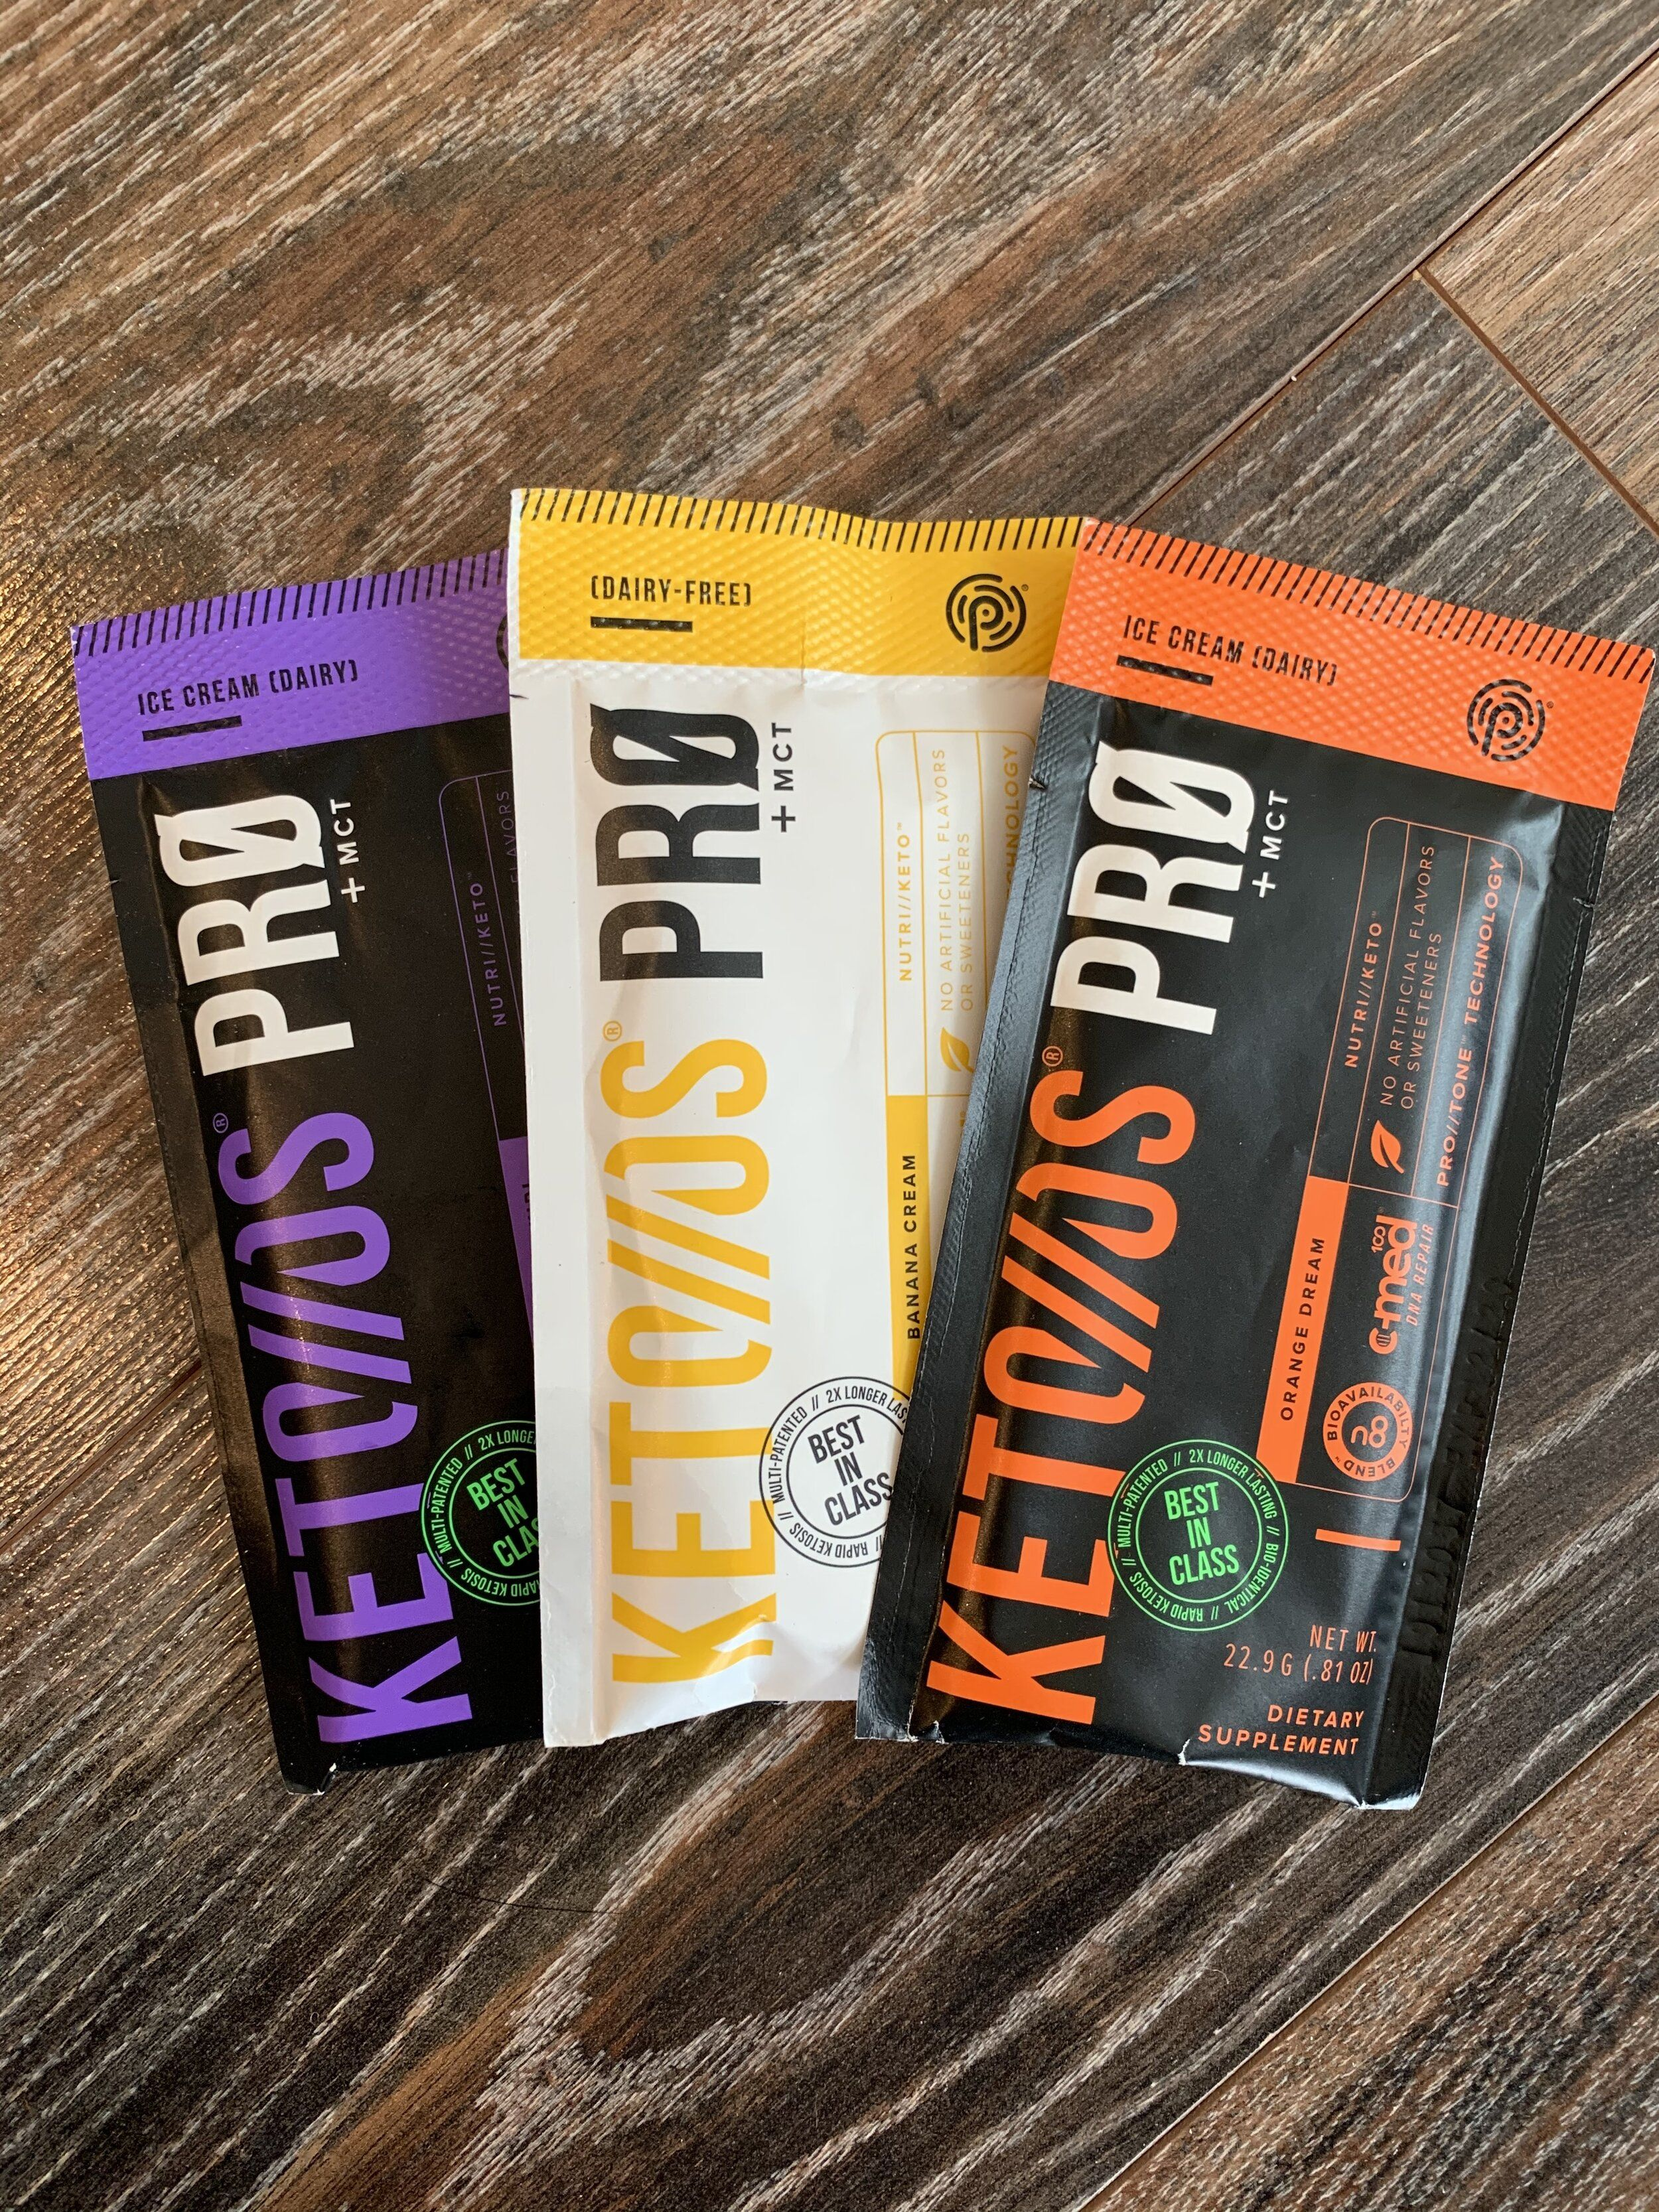 4 Pack Keto Protein — Simple. Fun. Keto! in 2020 Keto Protein Improve digestion